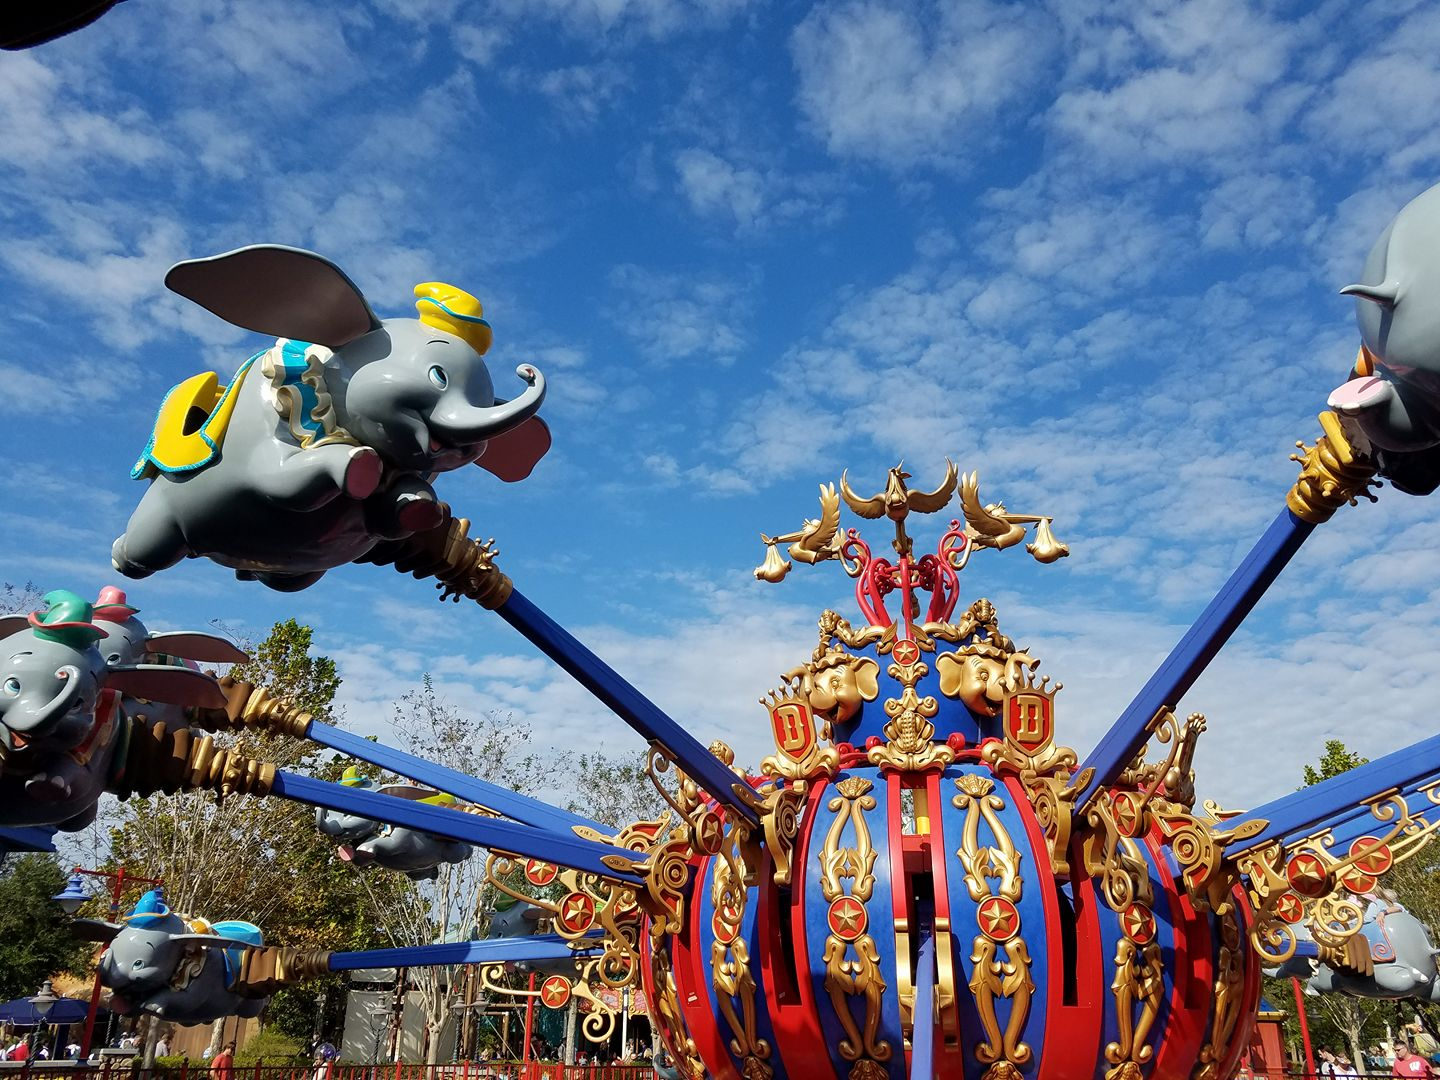 There is so much to love about Walt Disney World. Here are 47 reason why I love it.